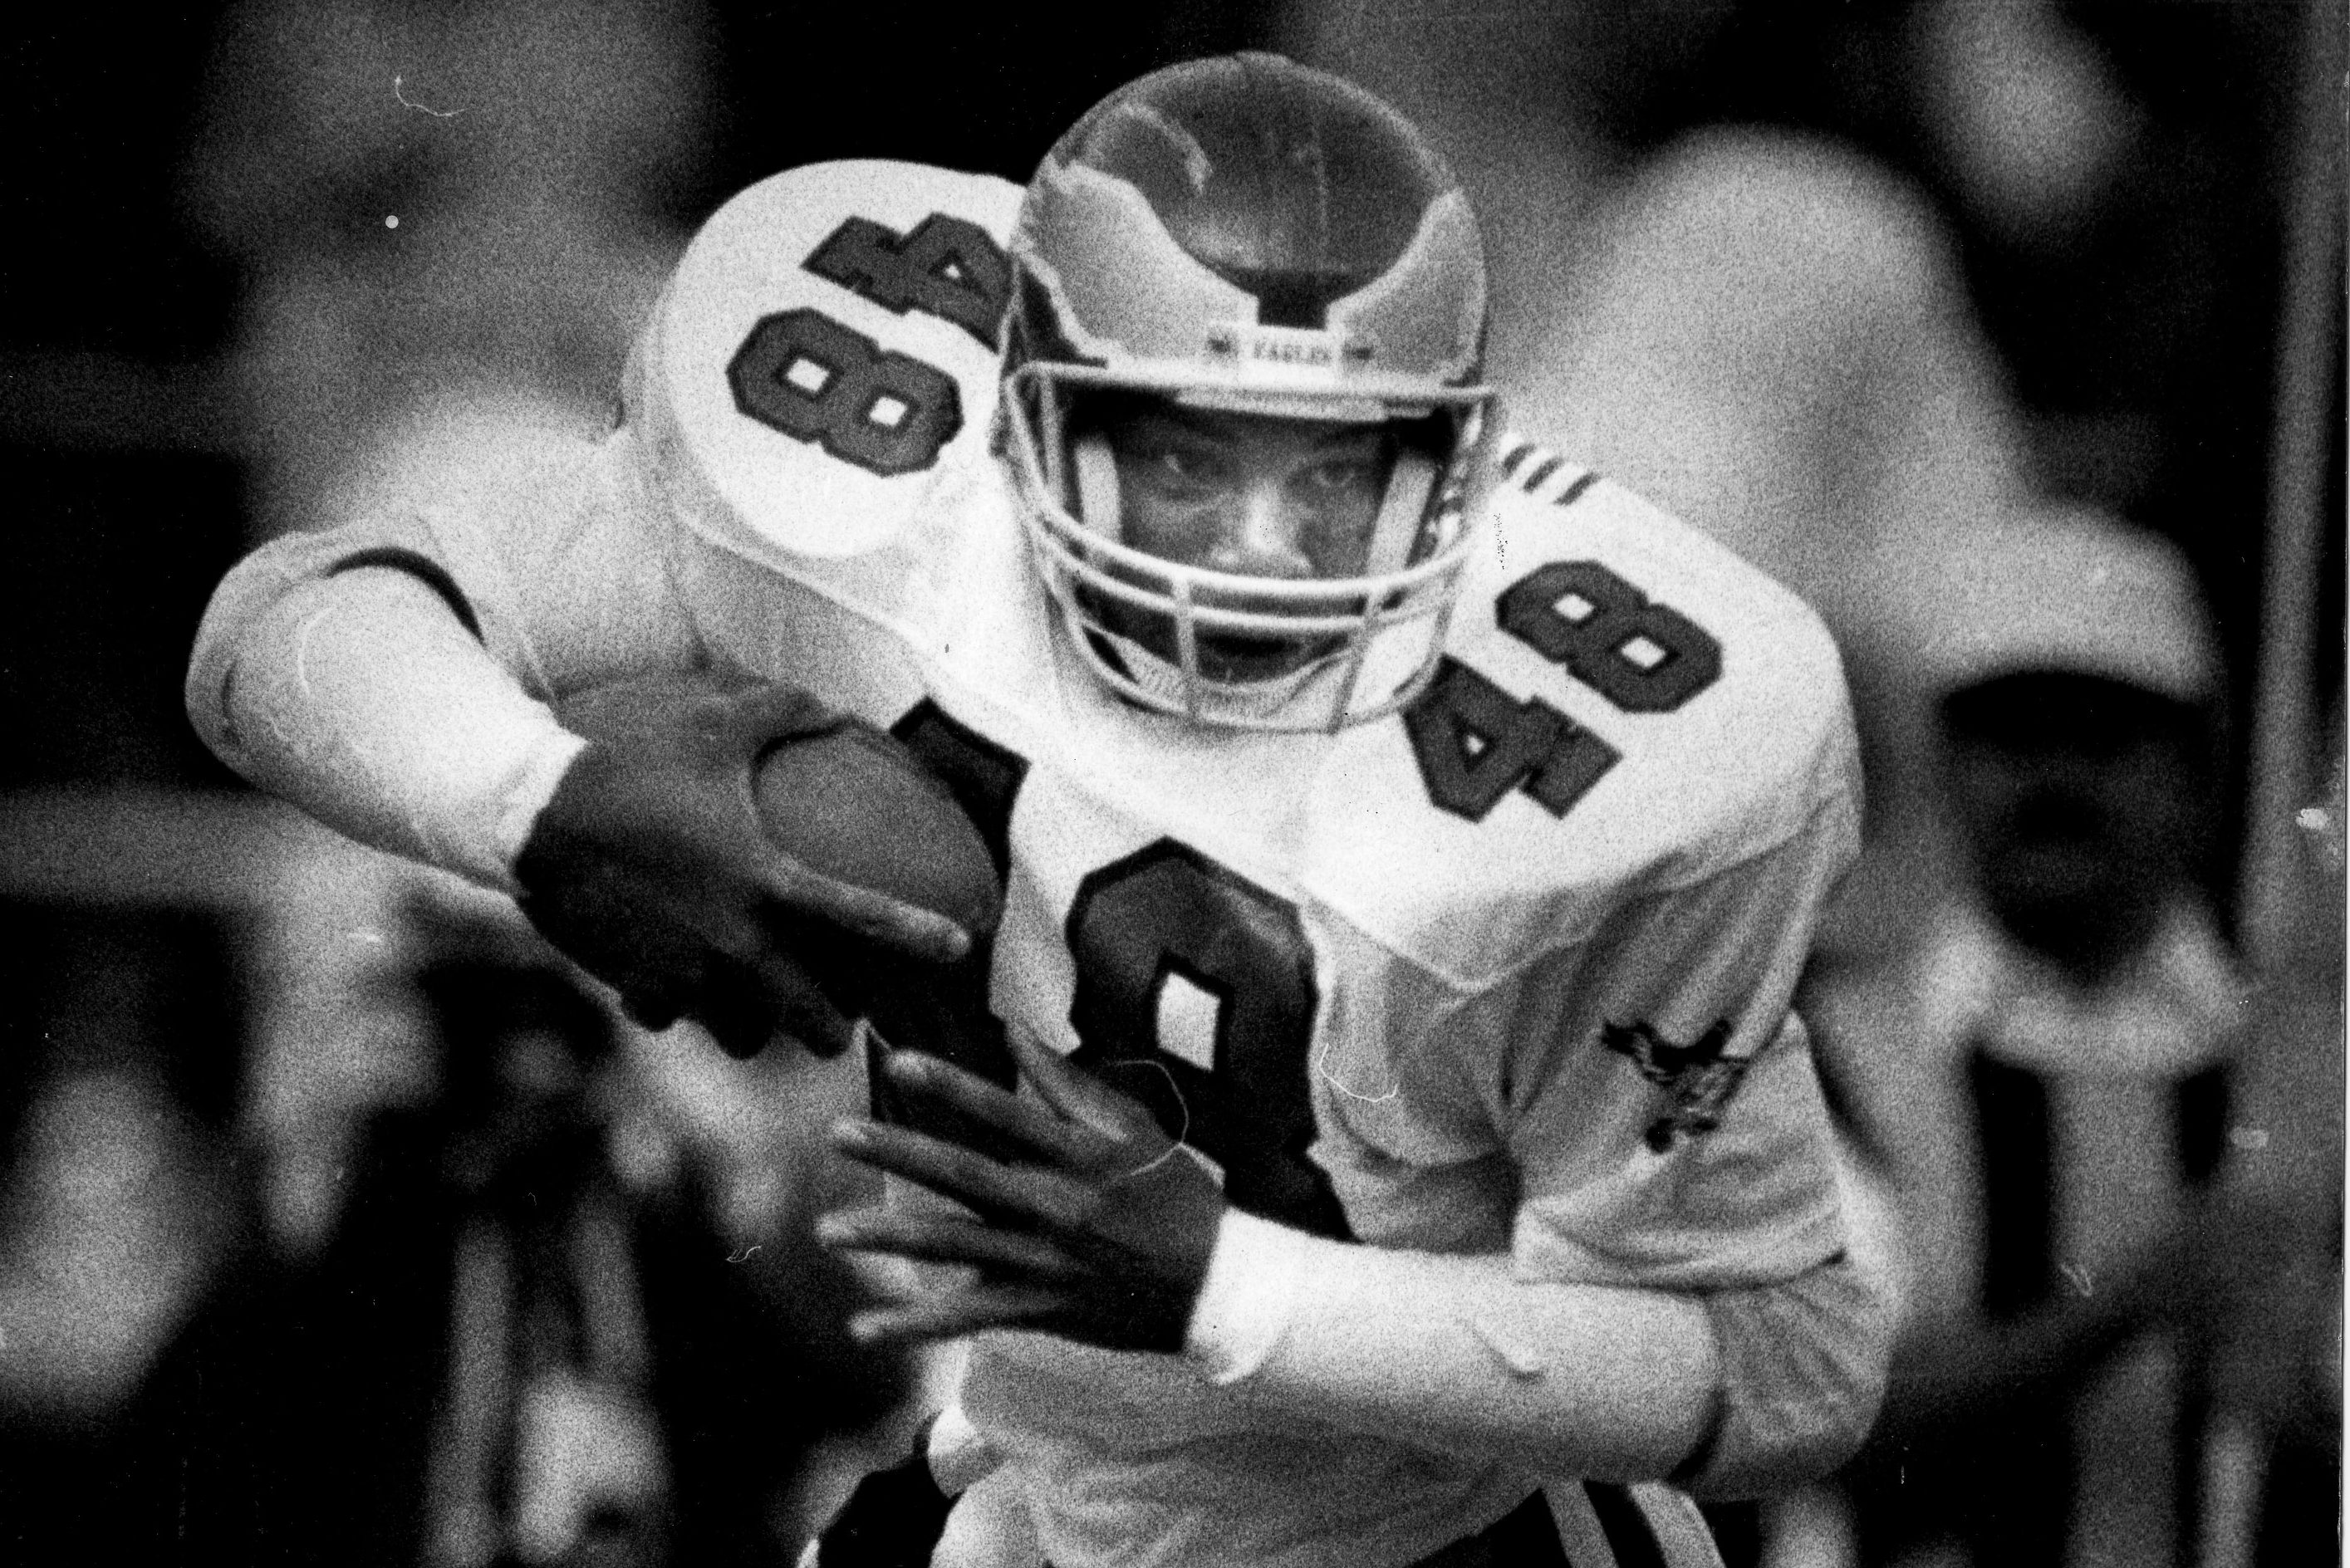 Eagles great Wes Hopkins has died at age 57